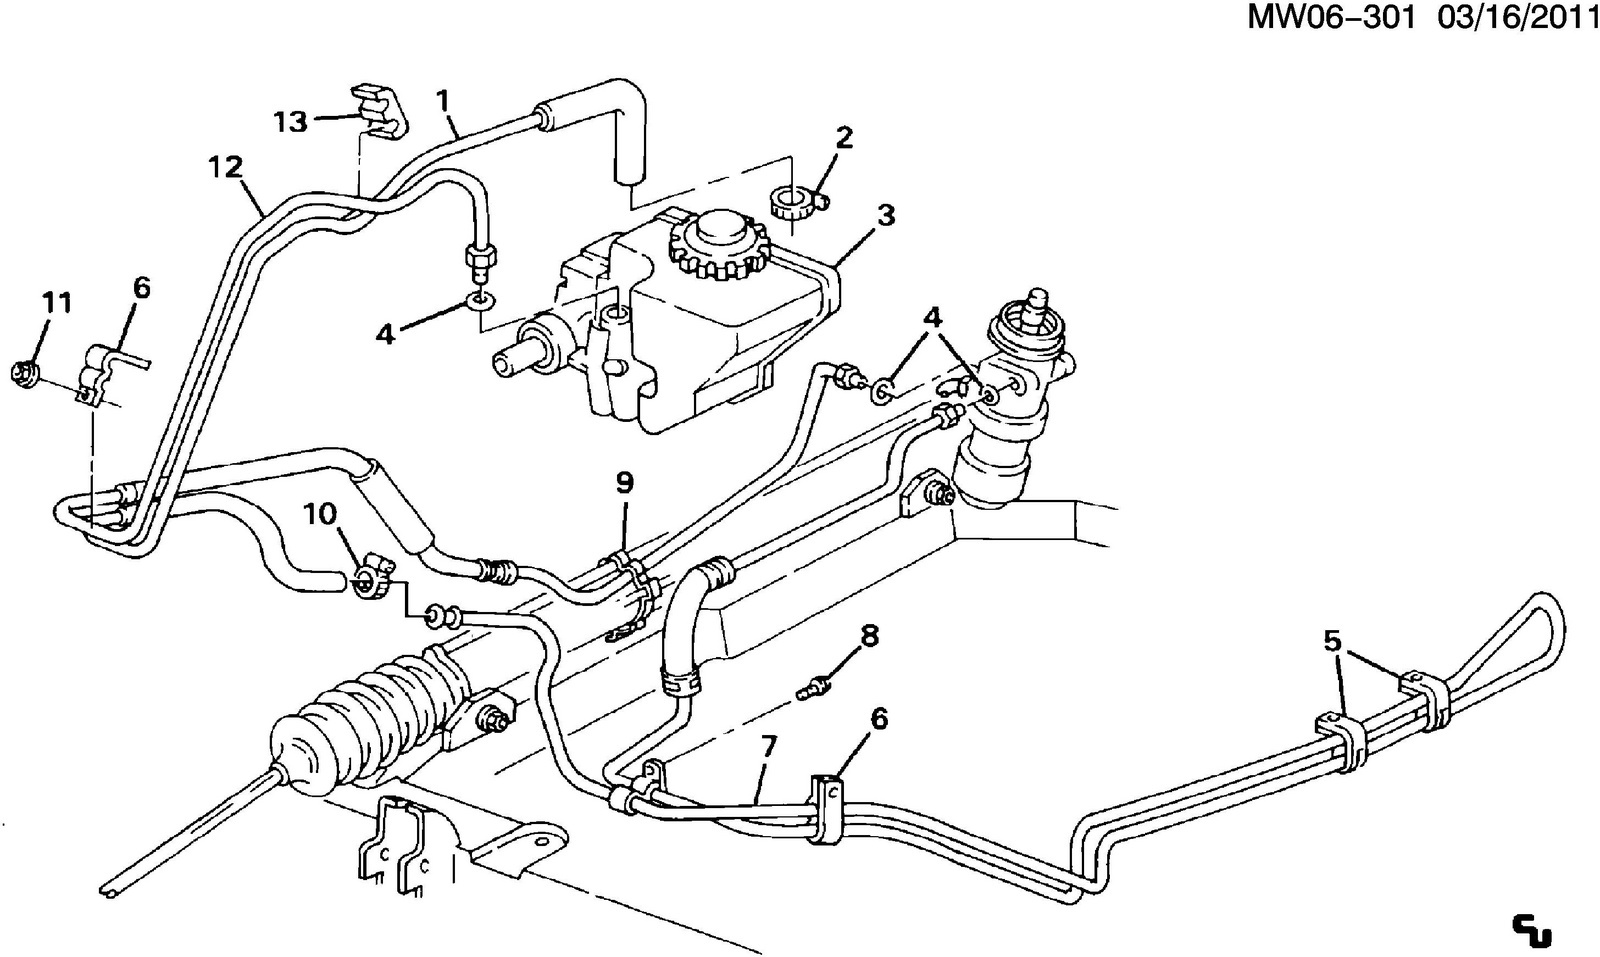 2007 Pontiac Grand Prix Engine Diagram on buick 3800 pumps